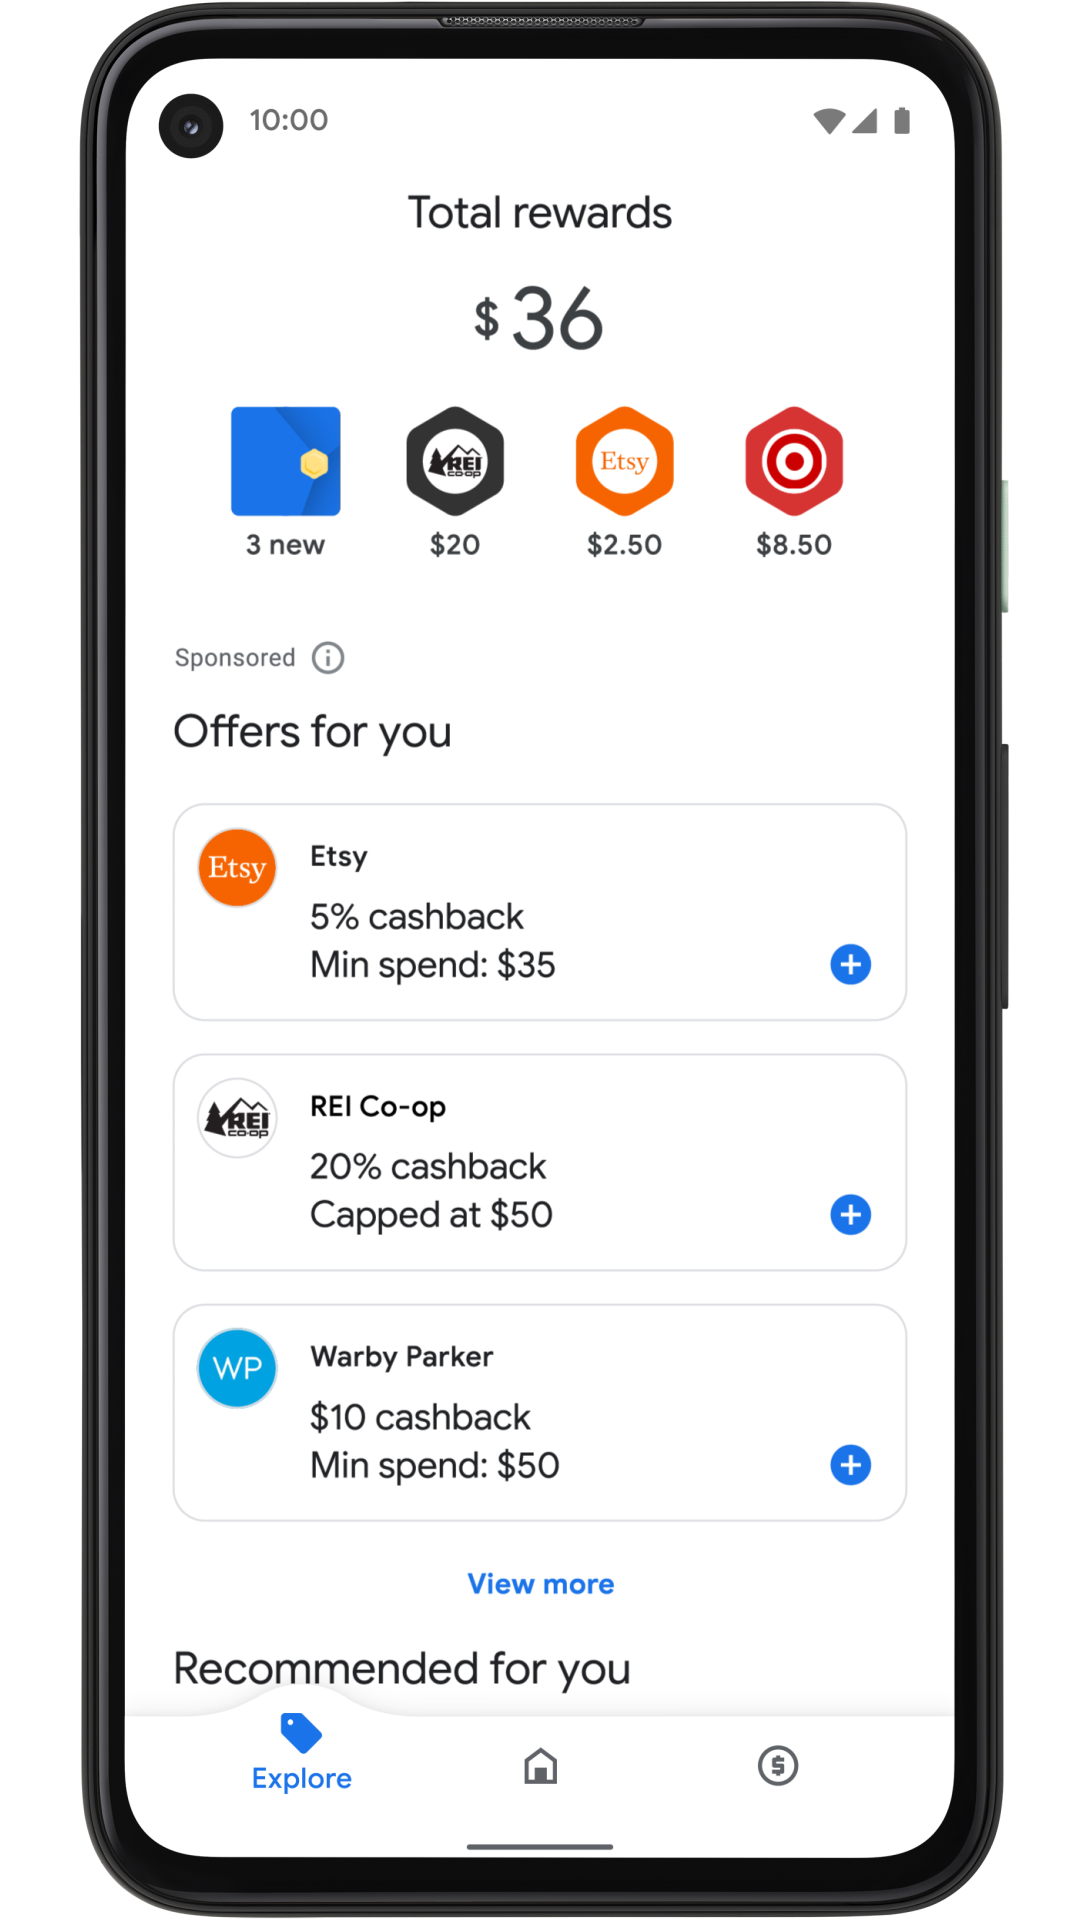 Cashback from Google Pay offers goes into a Google Pay account.